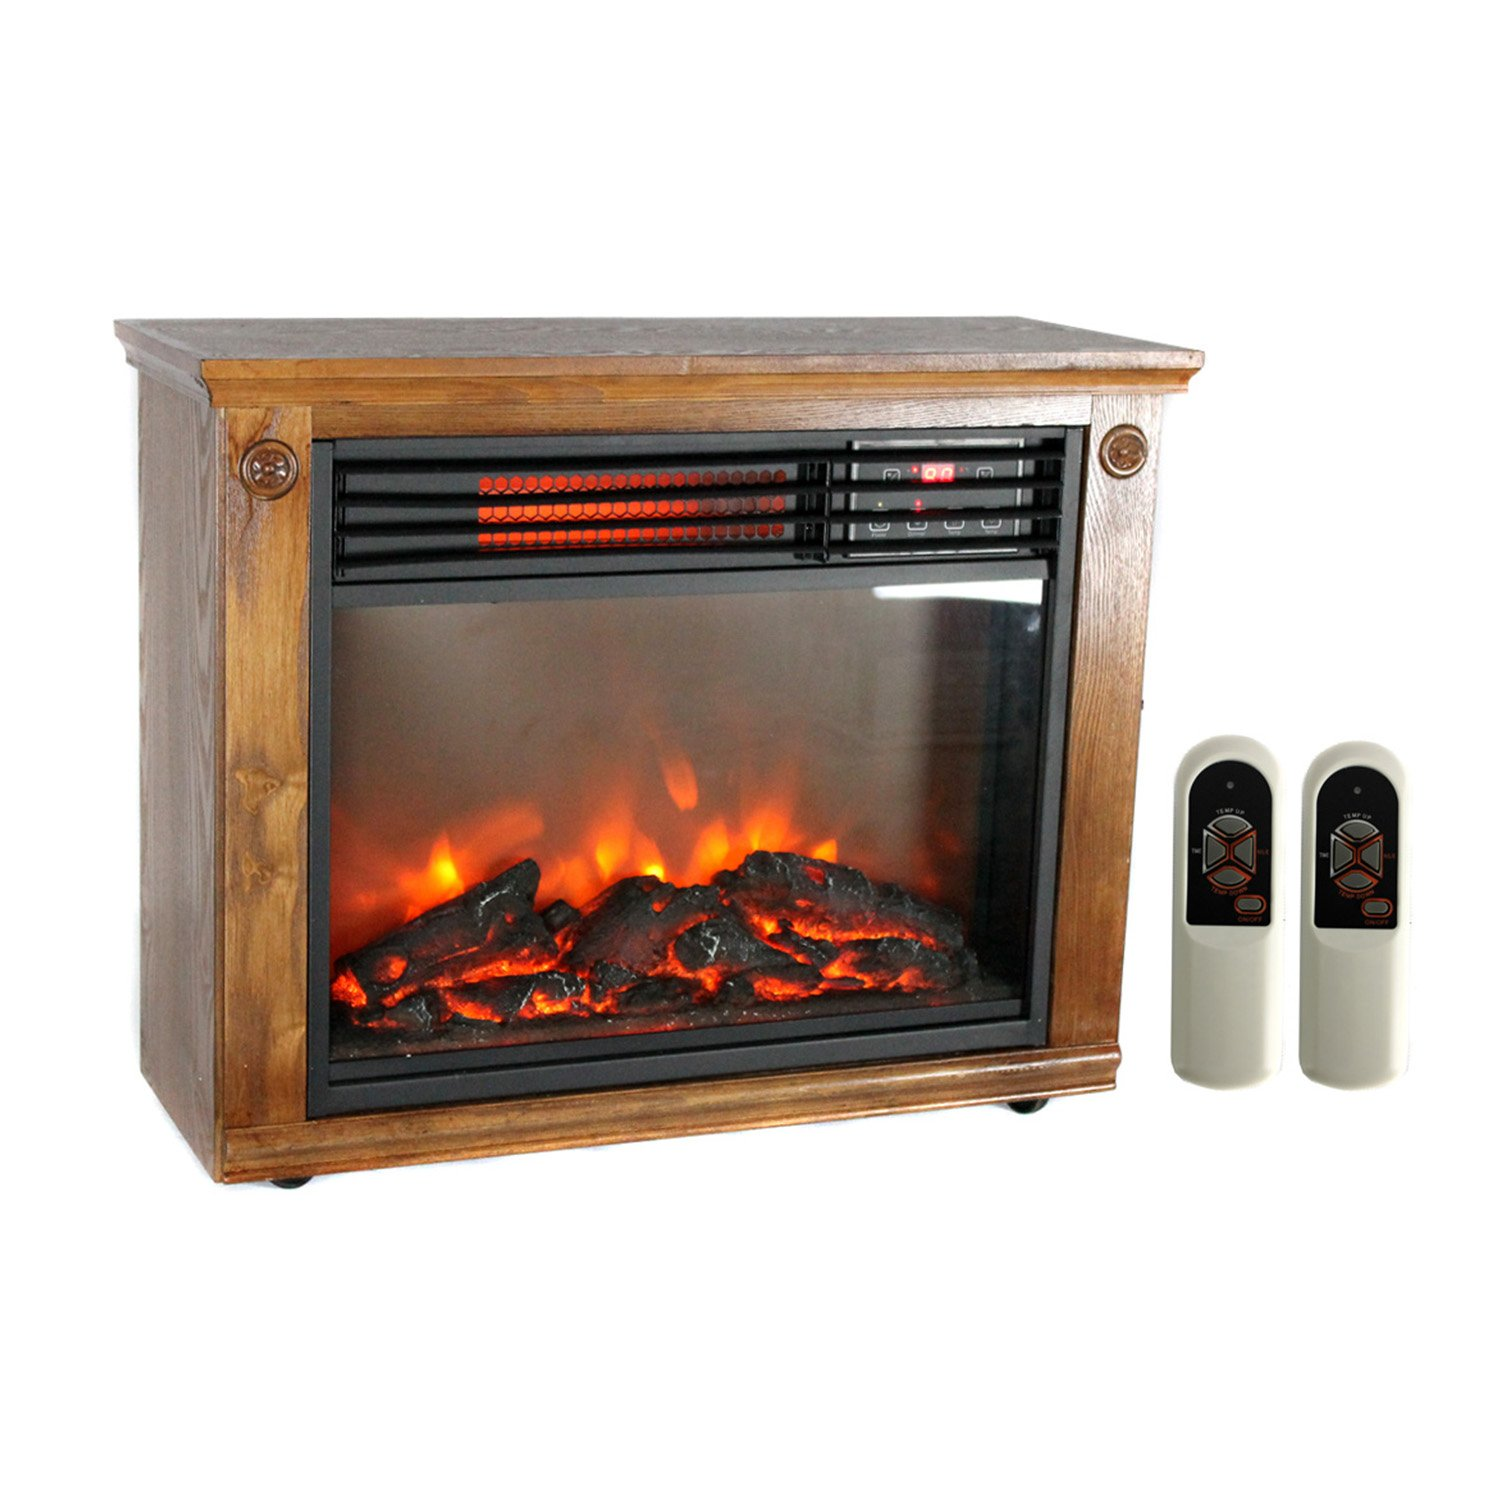 walmart sheridan pleasant canada en space ip heater cherry mobile hearth fireplace